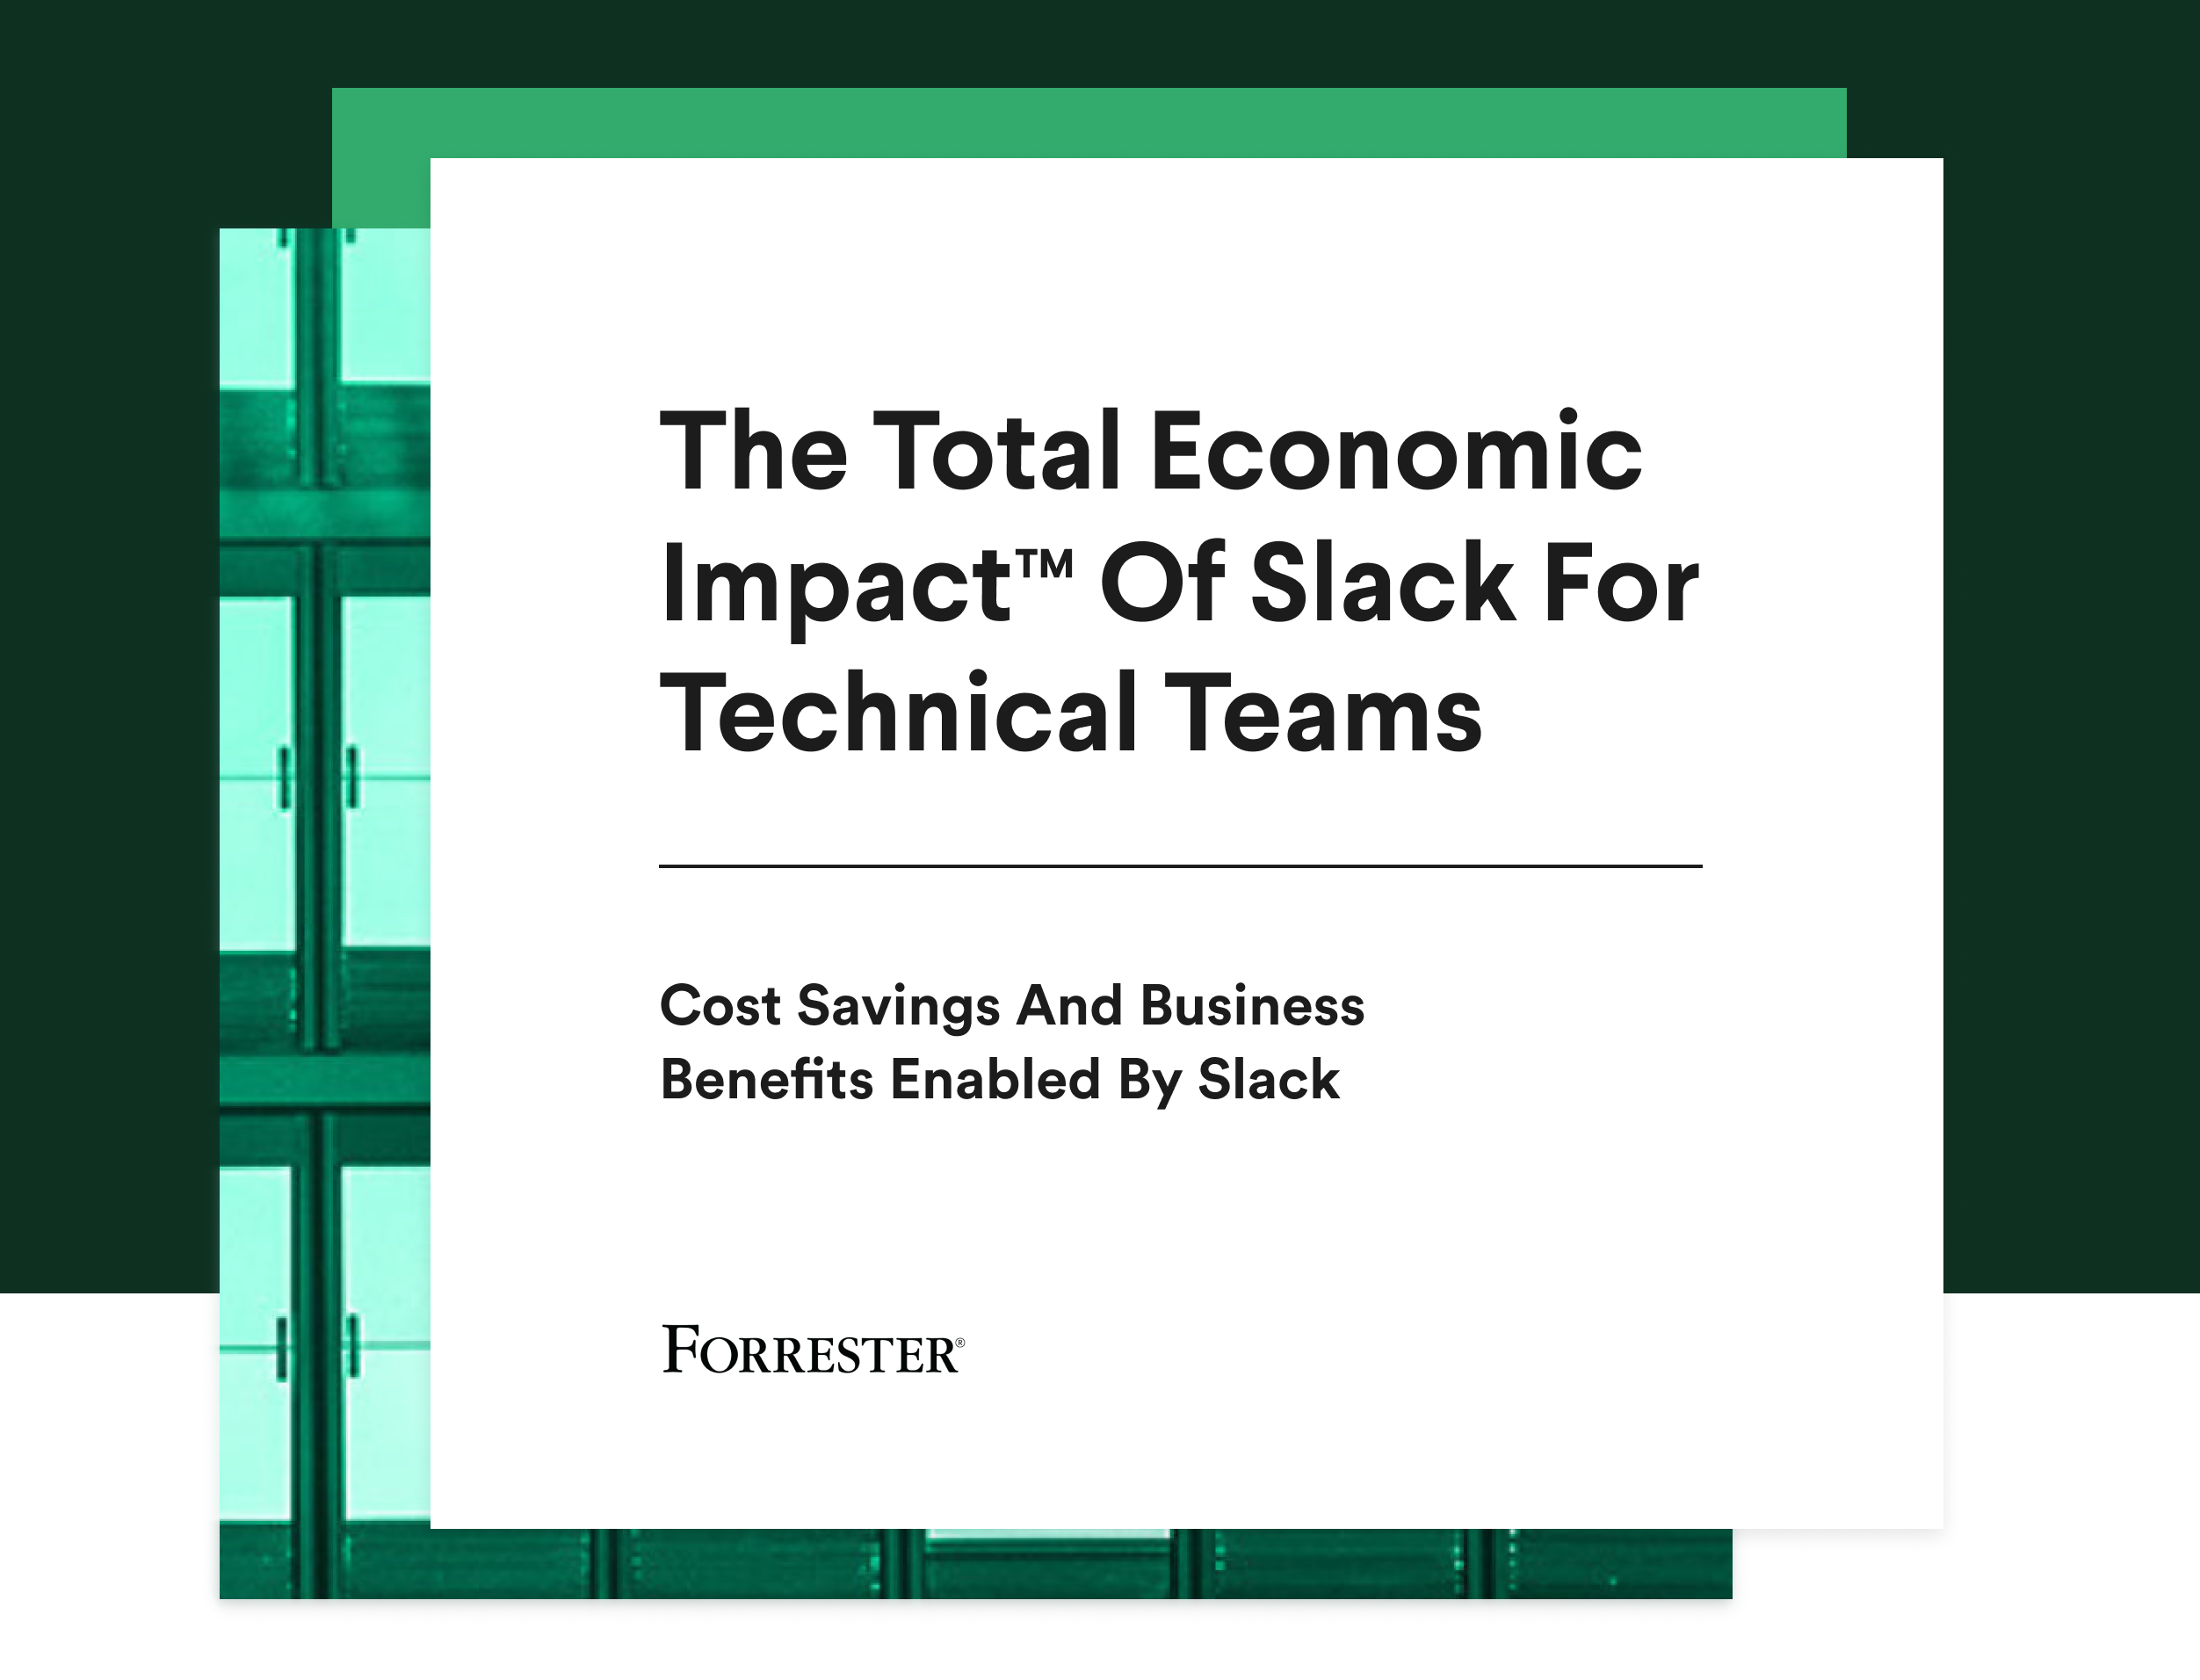 Cover of The Total Economic Impact Of Slack For Technical Teams